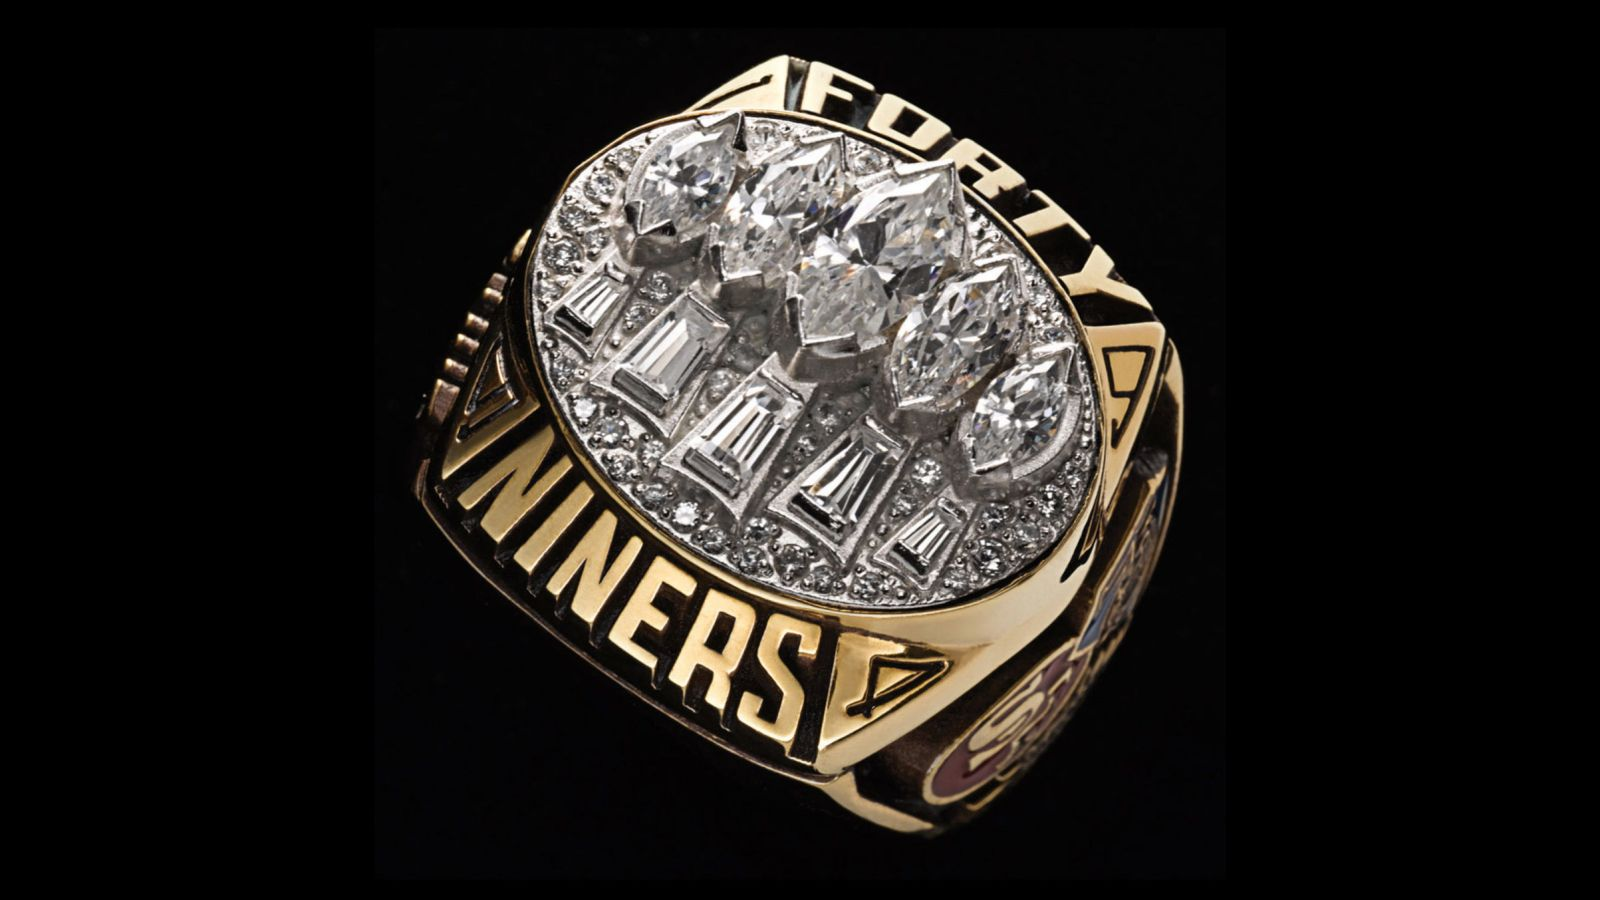 1994 San Francisco 49ers Super Bowl Championship Ring